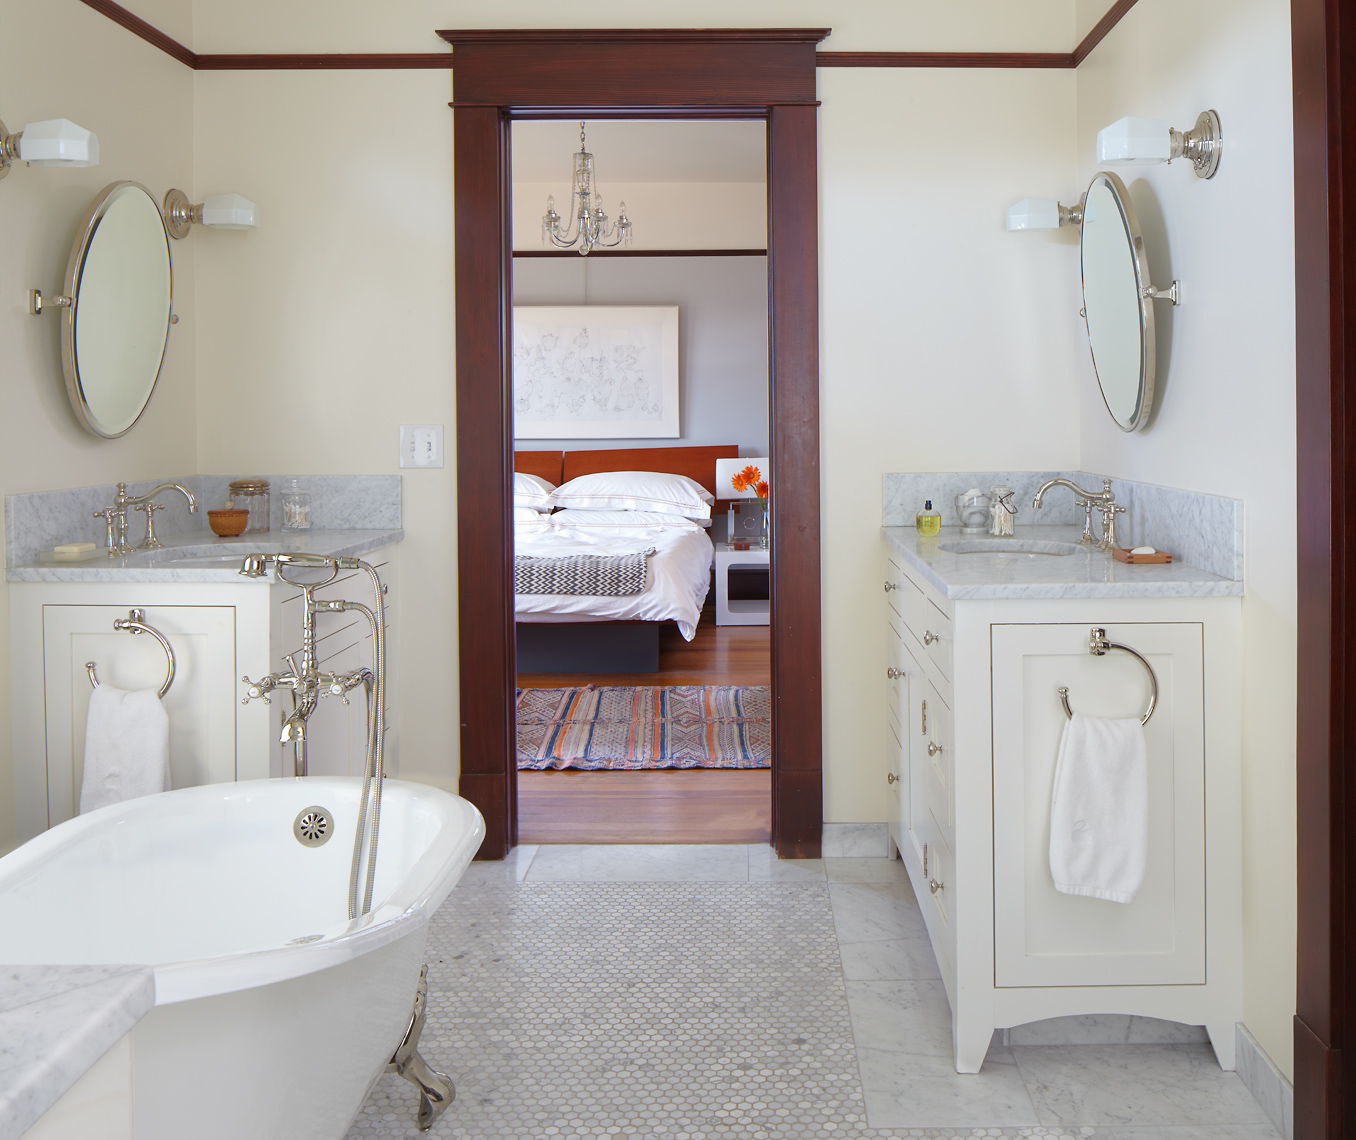 David Patterson Photography Editorial interiors, Home & Garden, Bathrooms